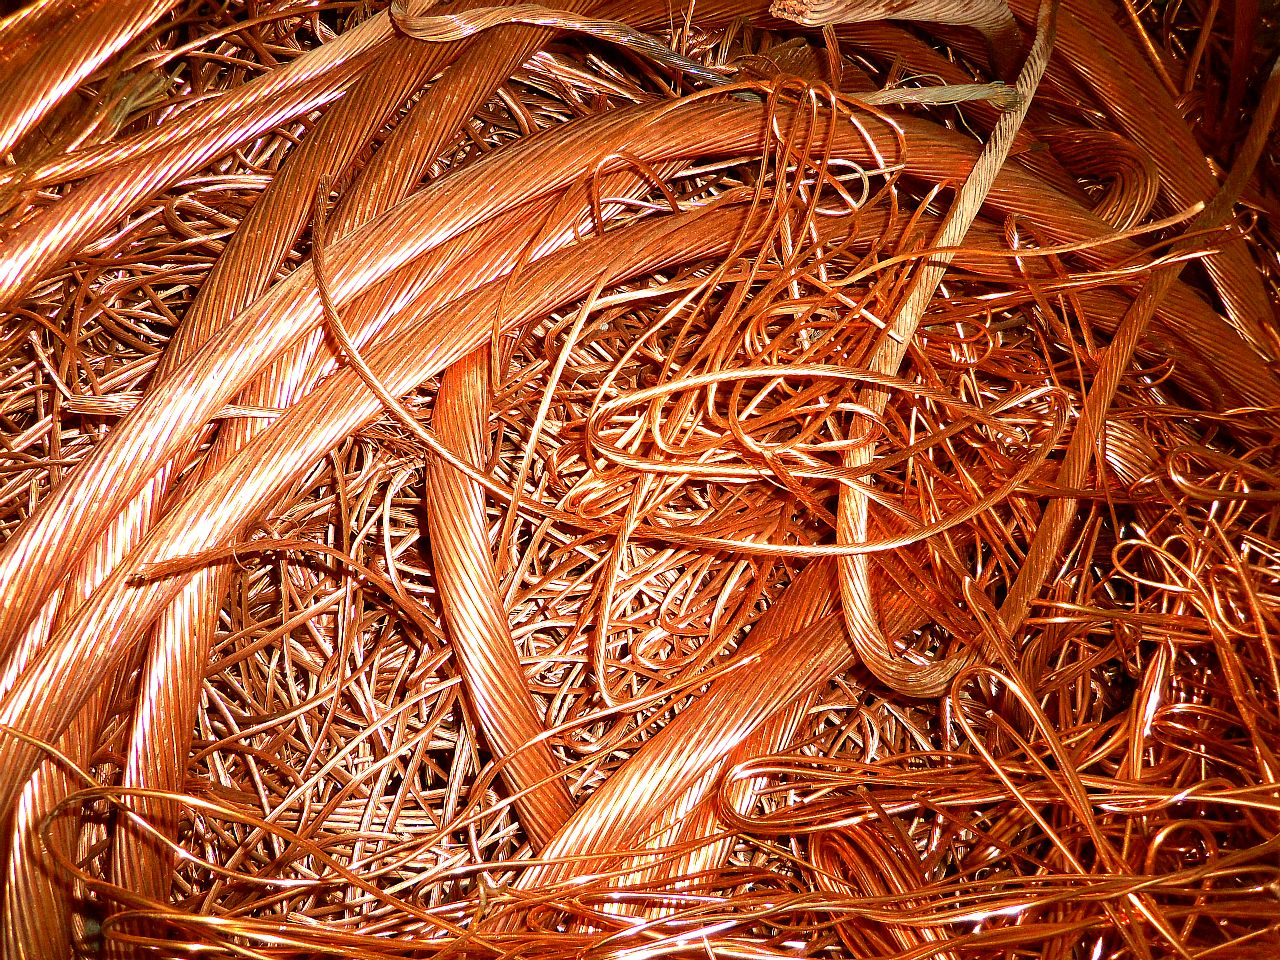 Wire – We buy insulated and non insulated wire. This is a picture of bare bright copper wire.